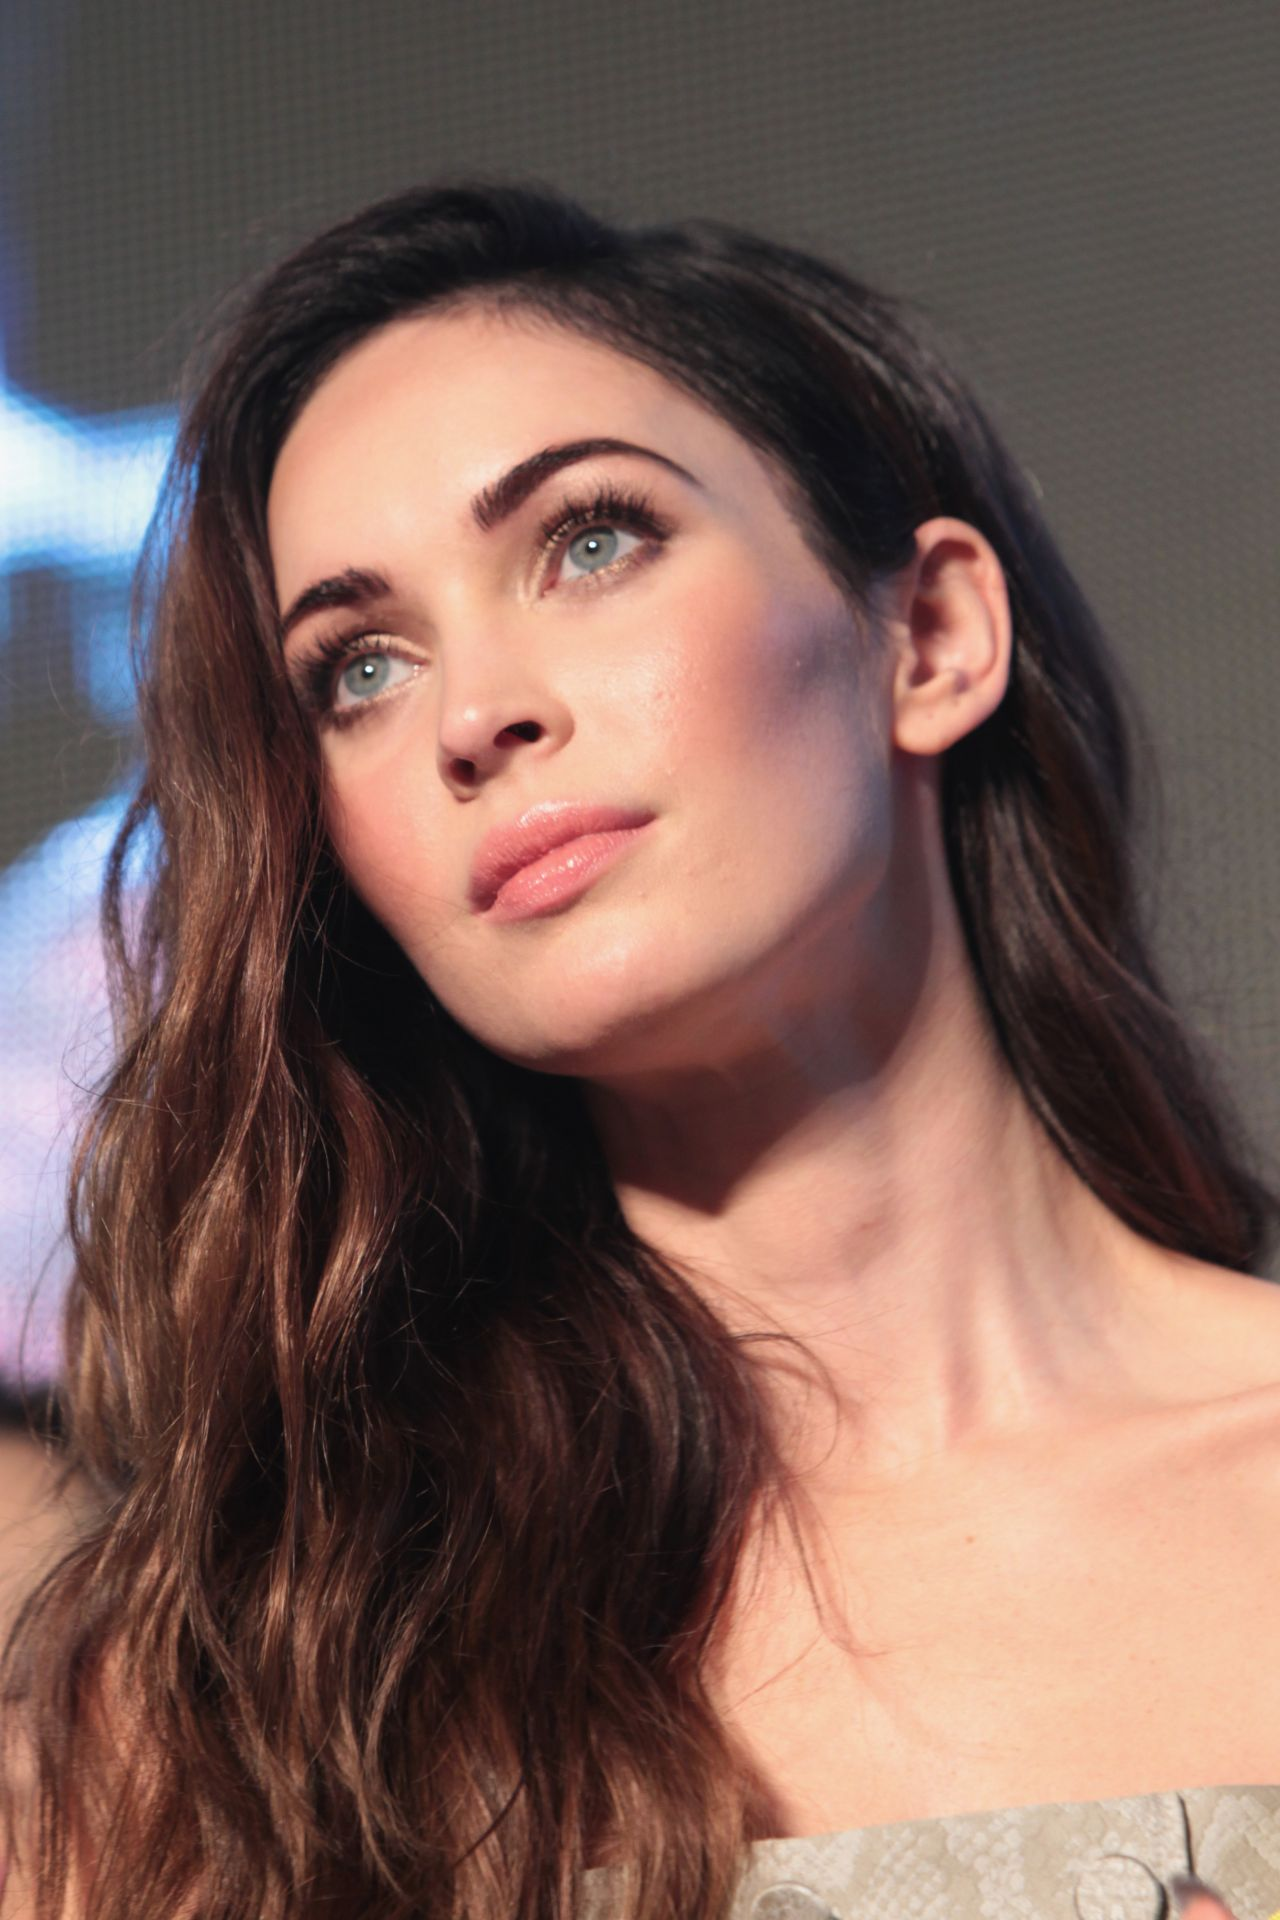 Megan Fox Teenage Mutant Ninja Turtles Premiere In Seoul